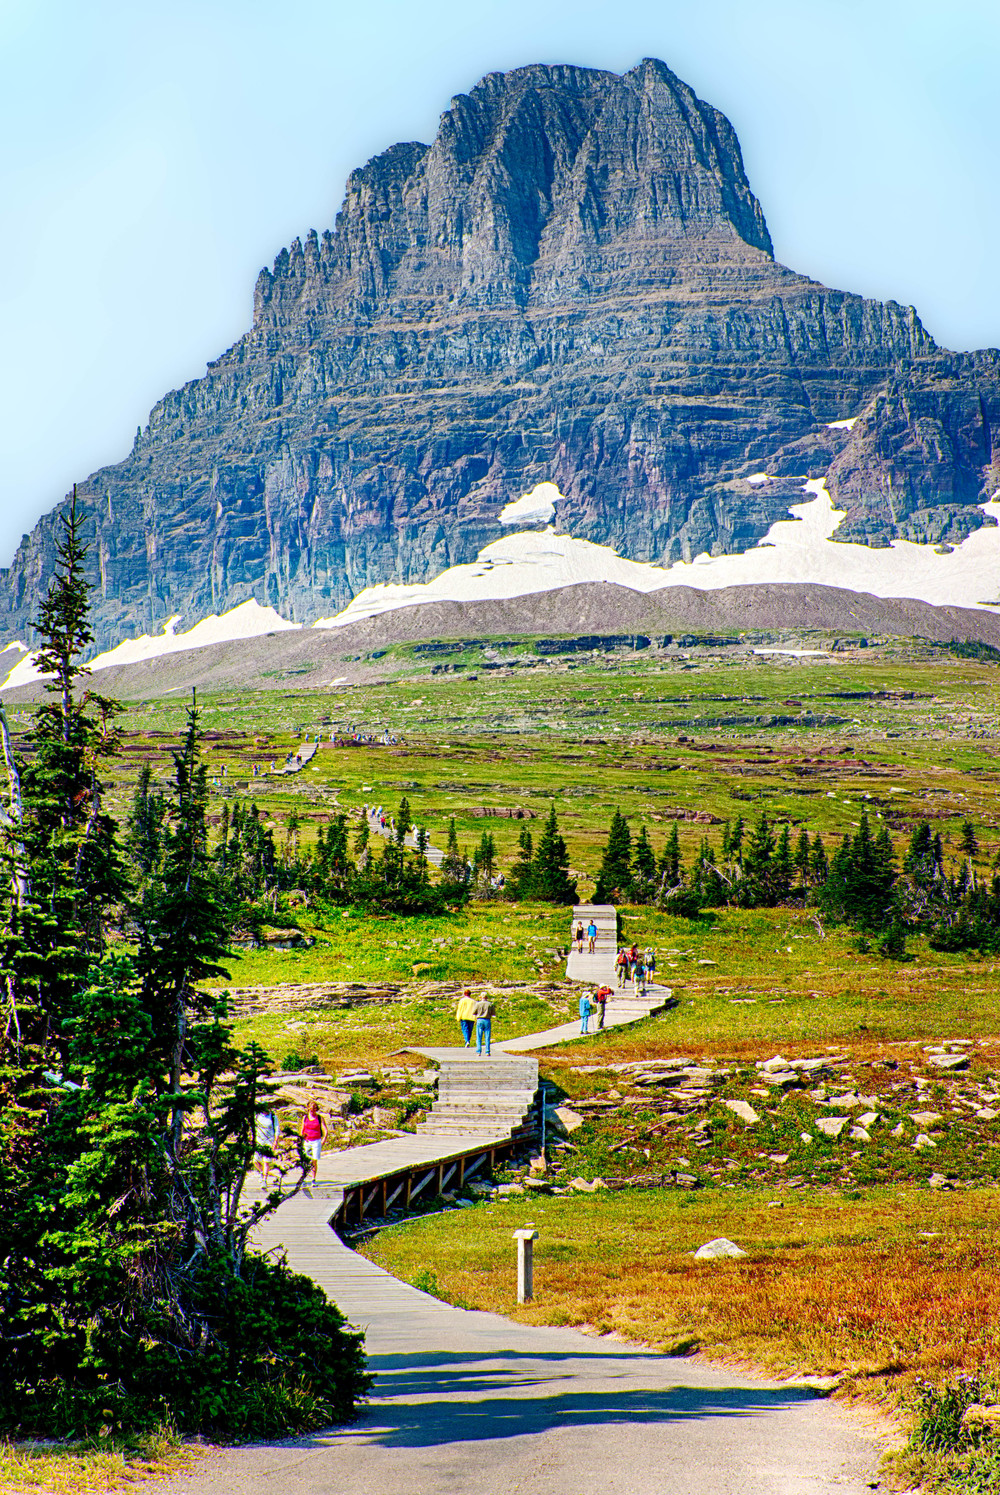 Logan Pass at the Top